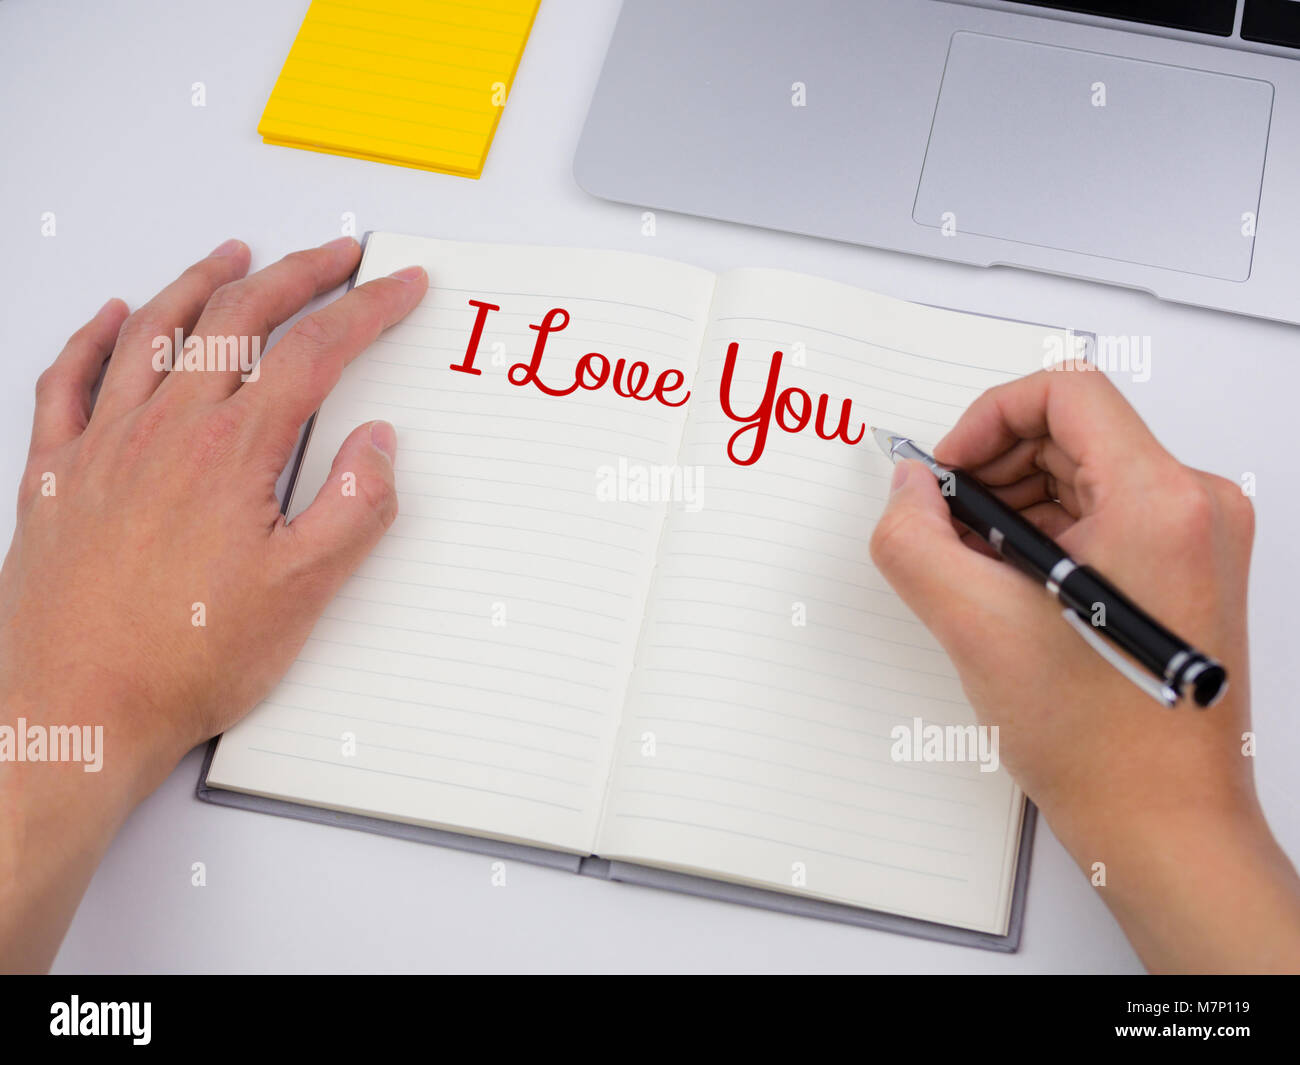 I love you written in note book on desk - Stock Image